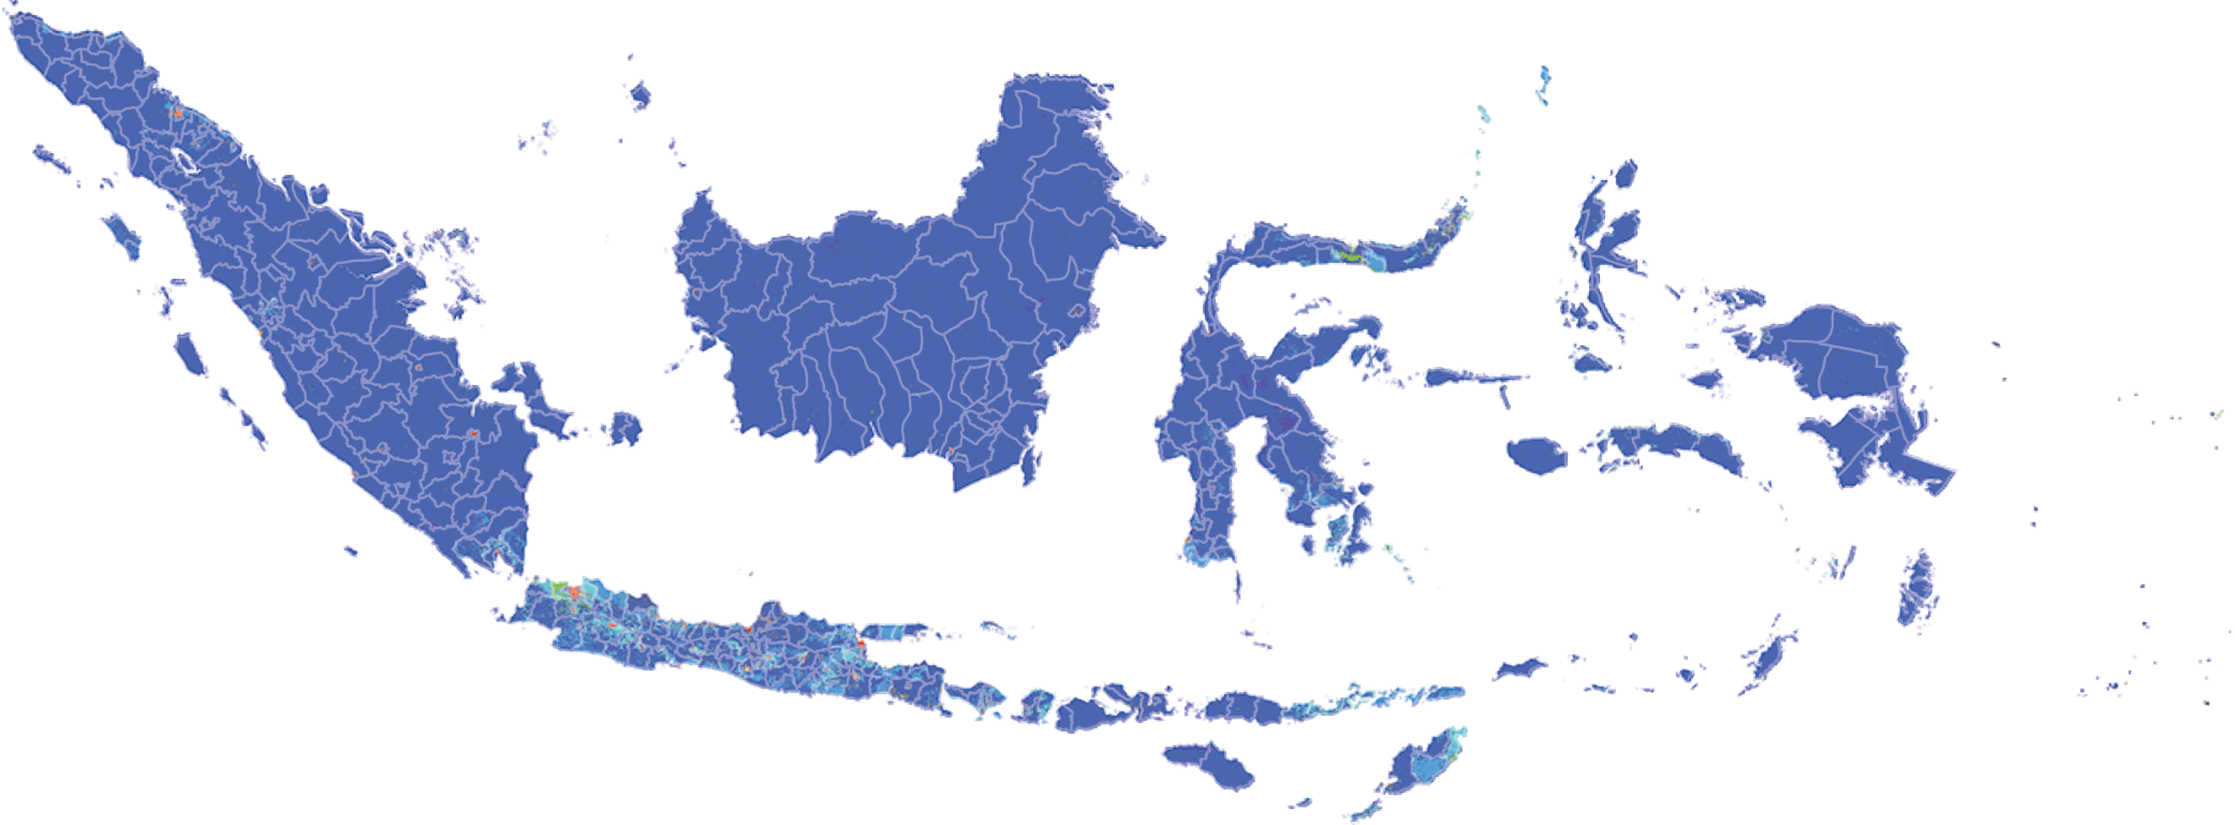 Indonesia - Number and distribution of pregnancies (2012)